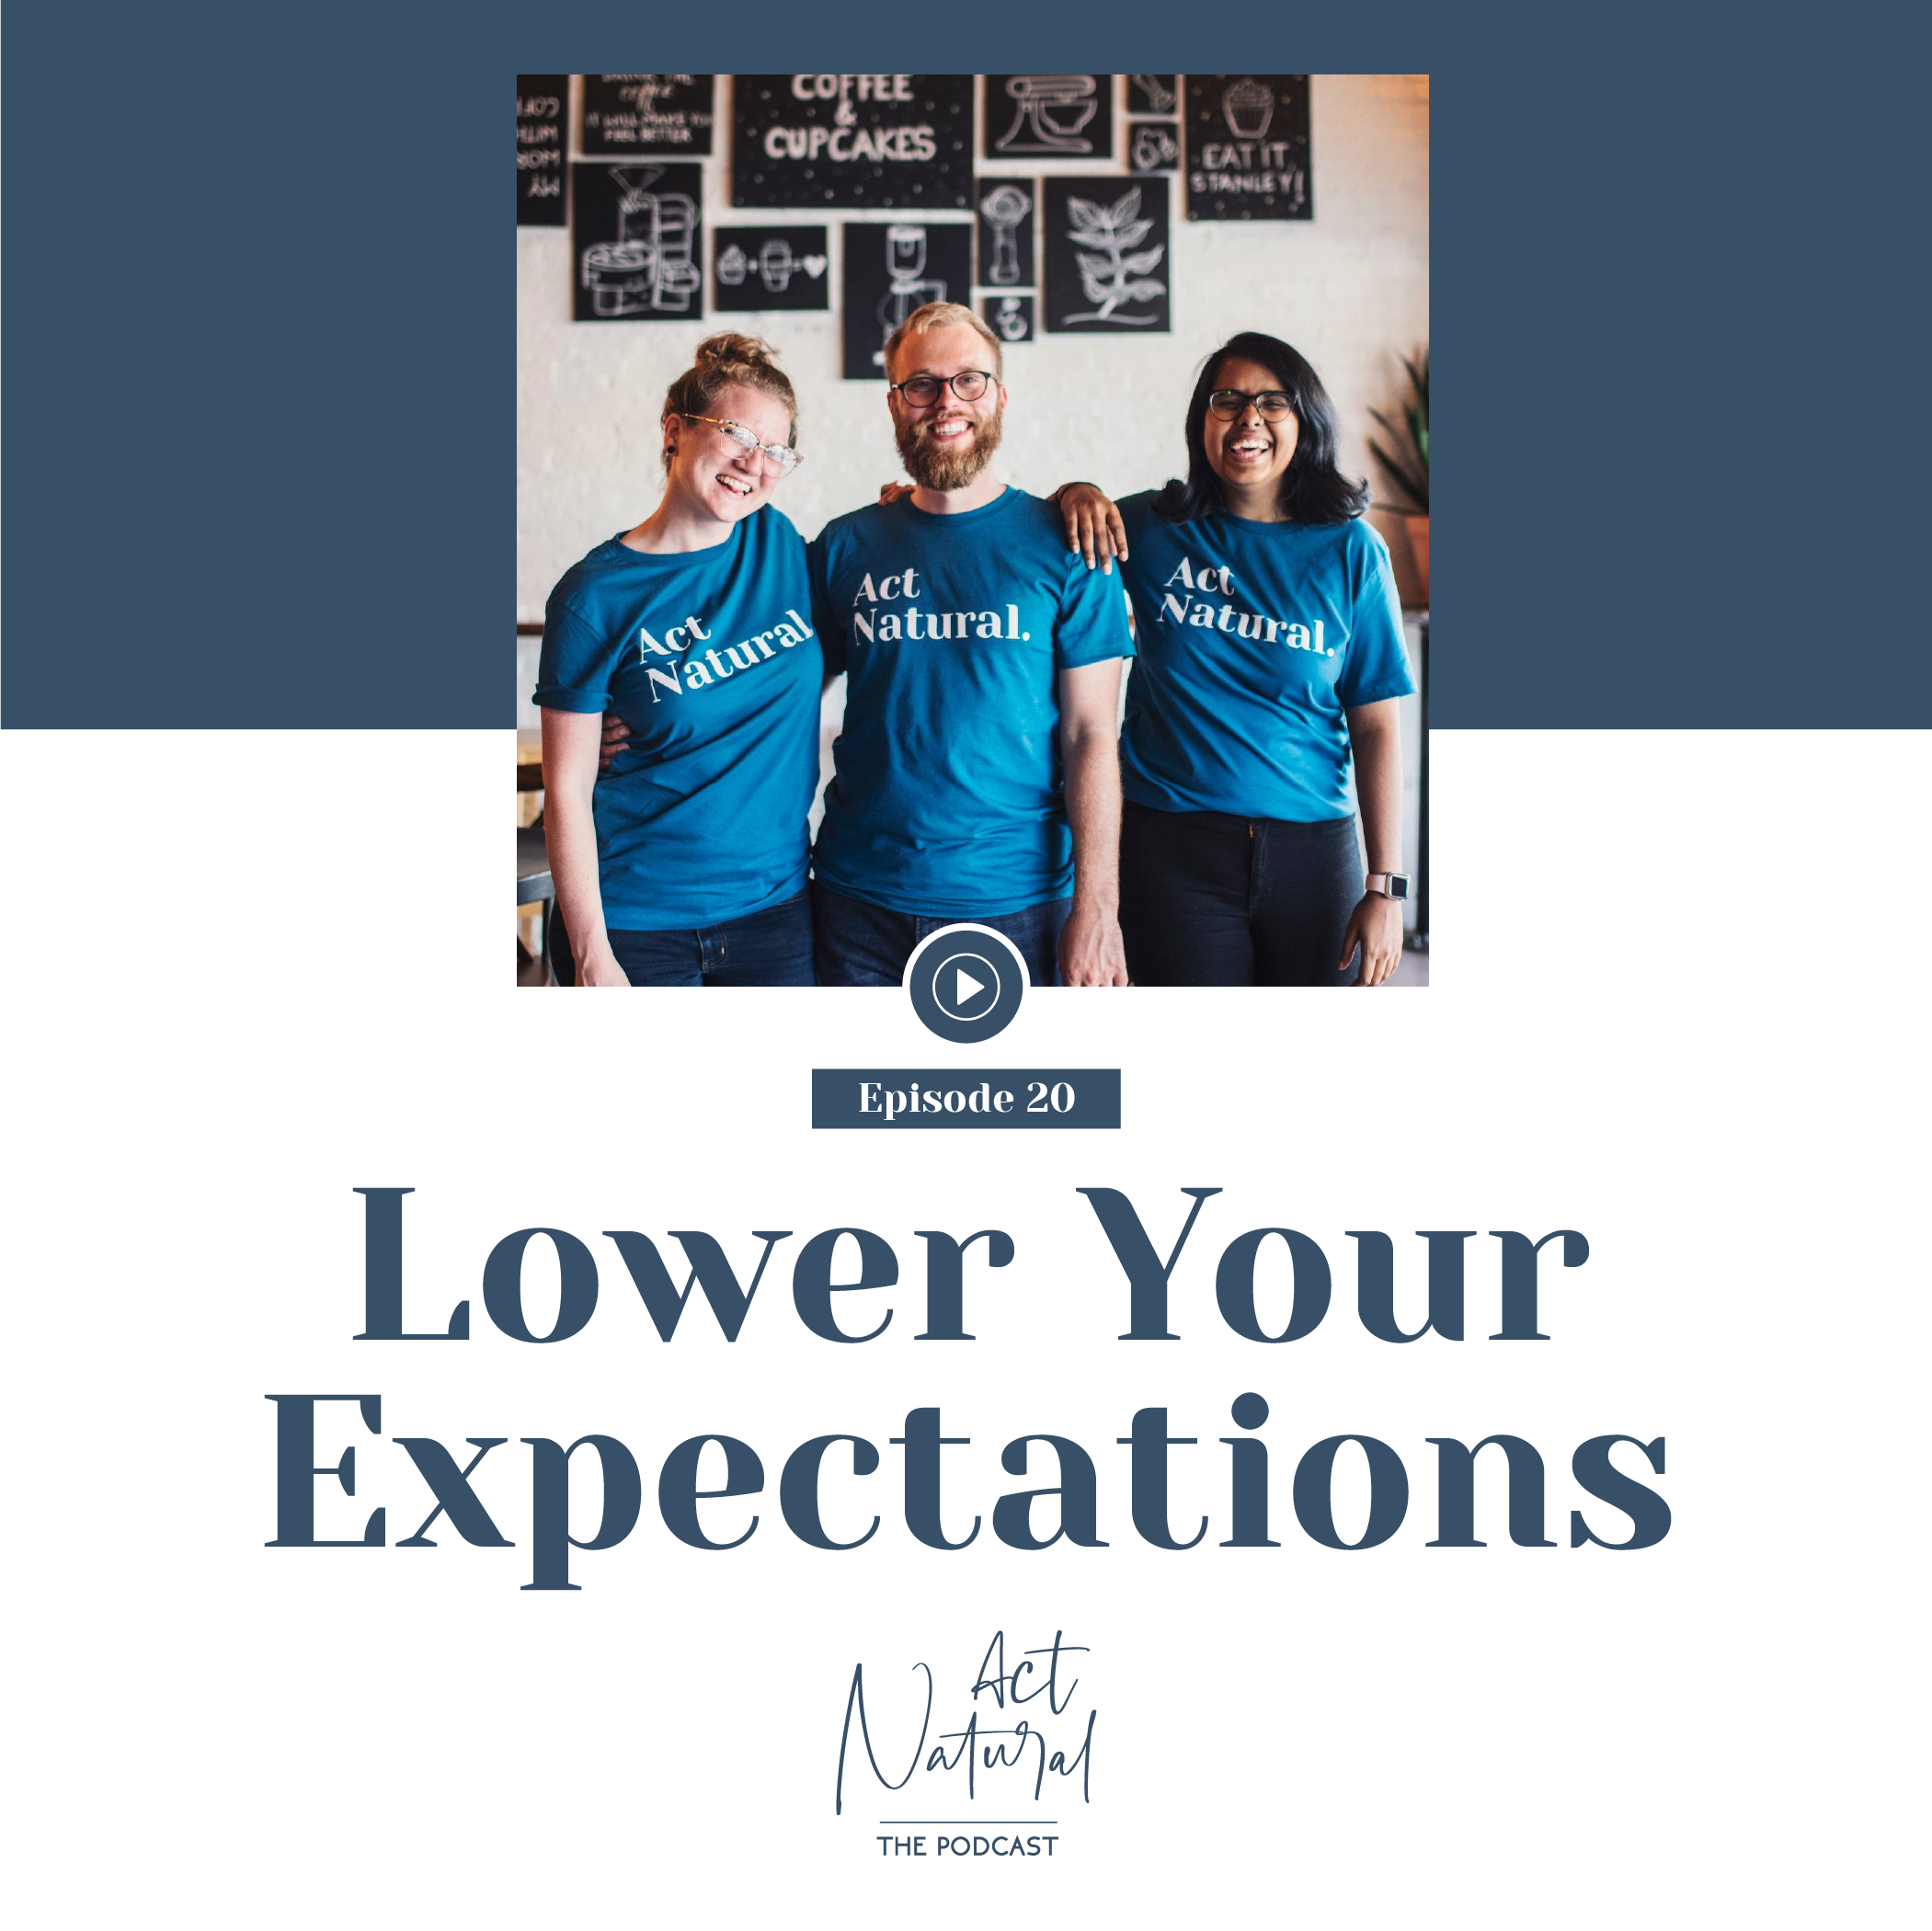 Episode 20: Lower Your Expectations